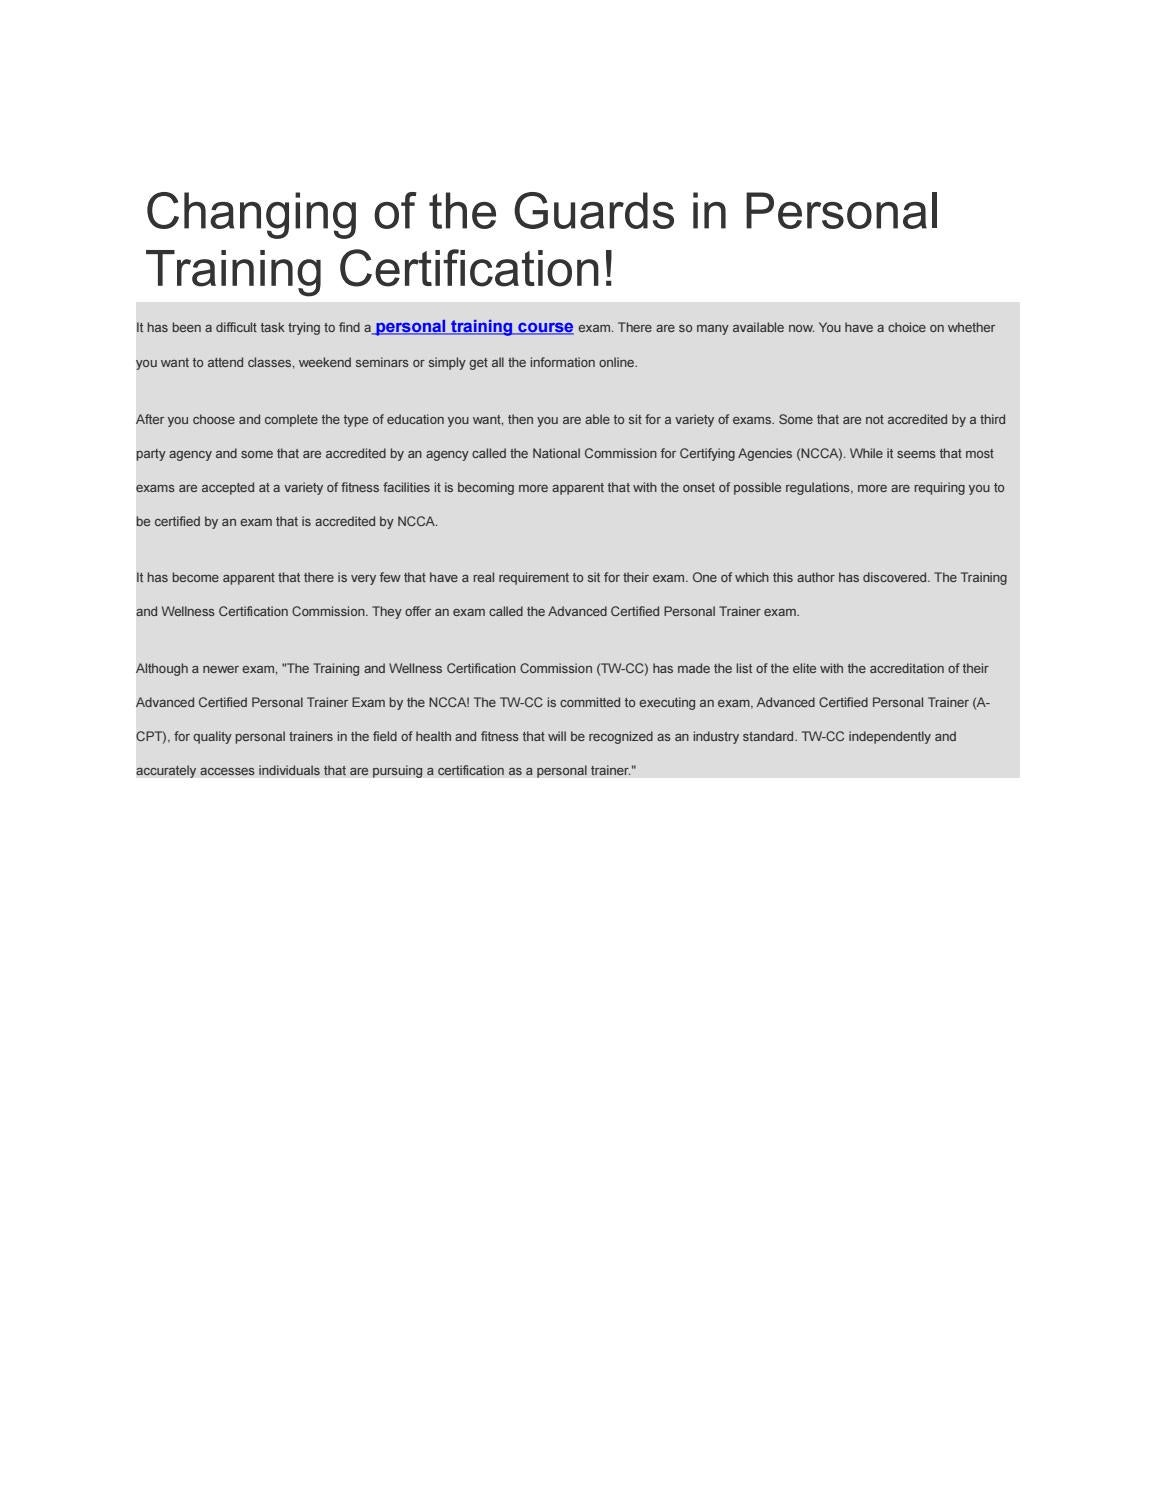 Changing Of The Guards In Personal Training Certification By Buy